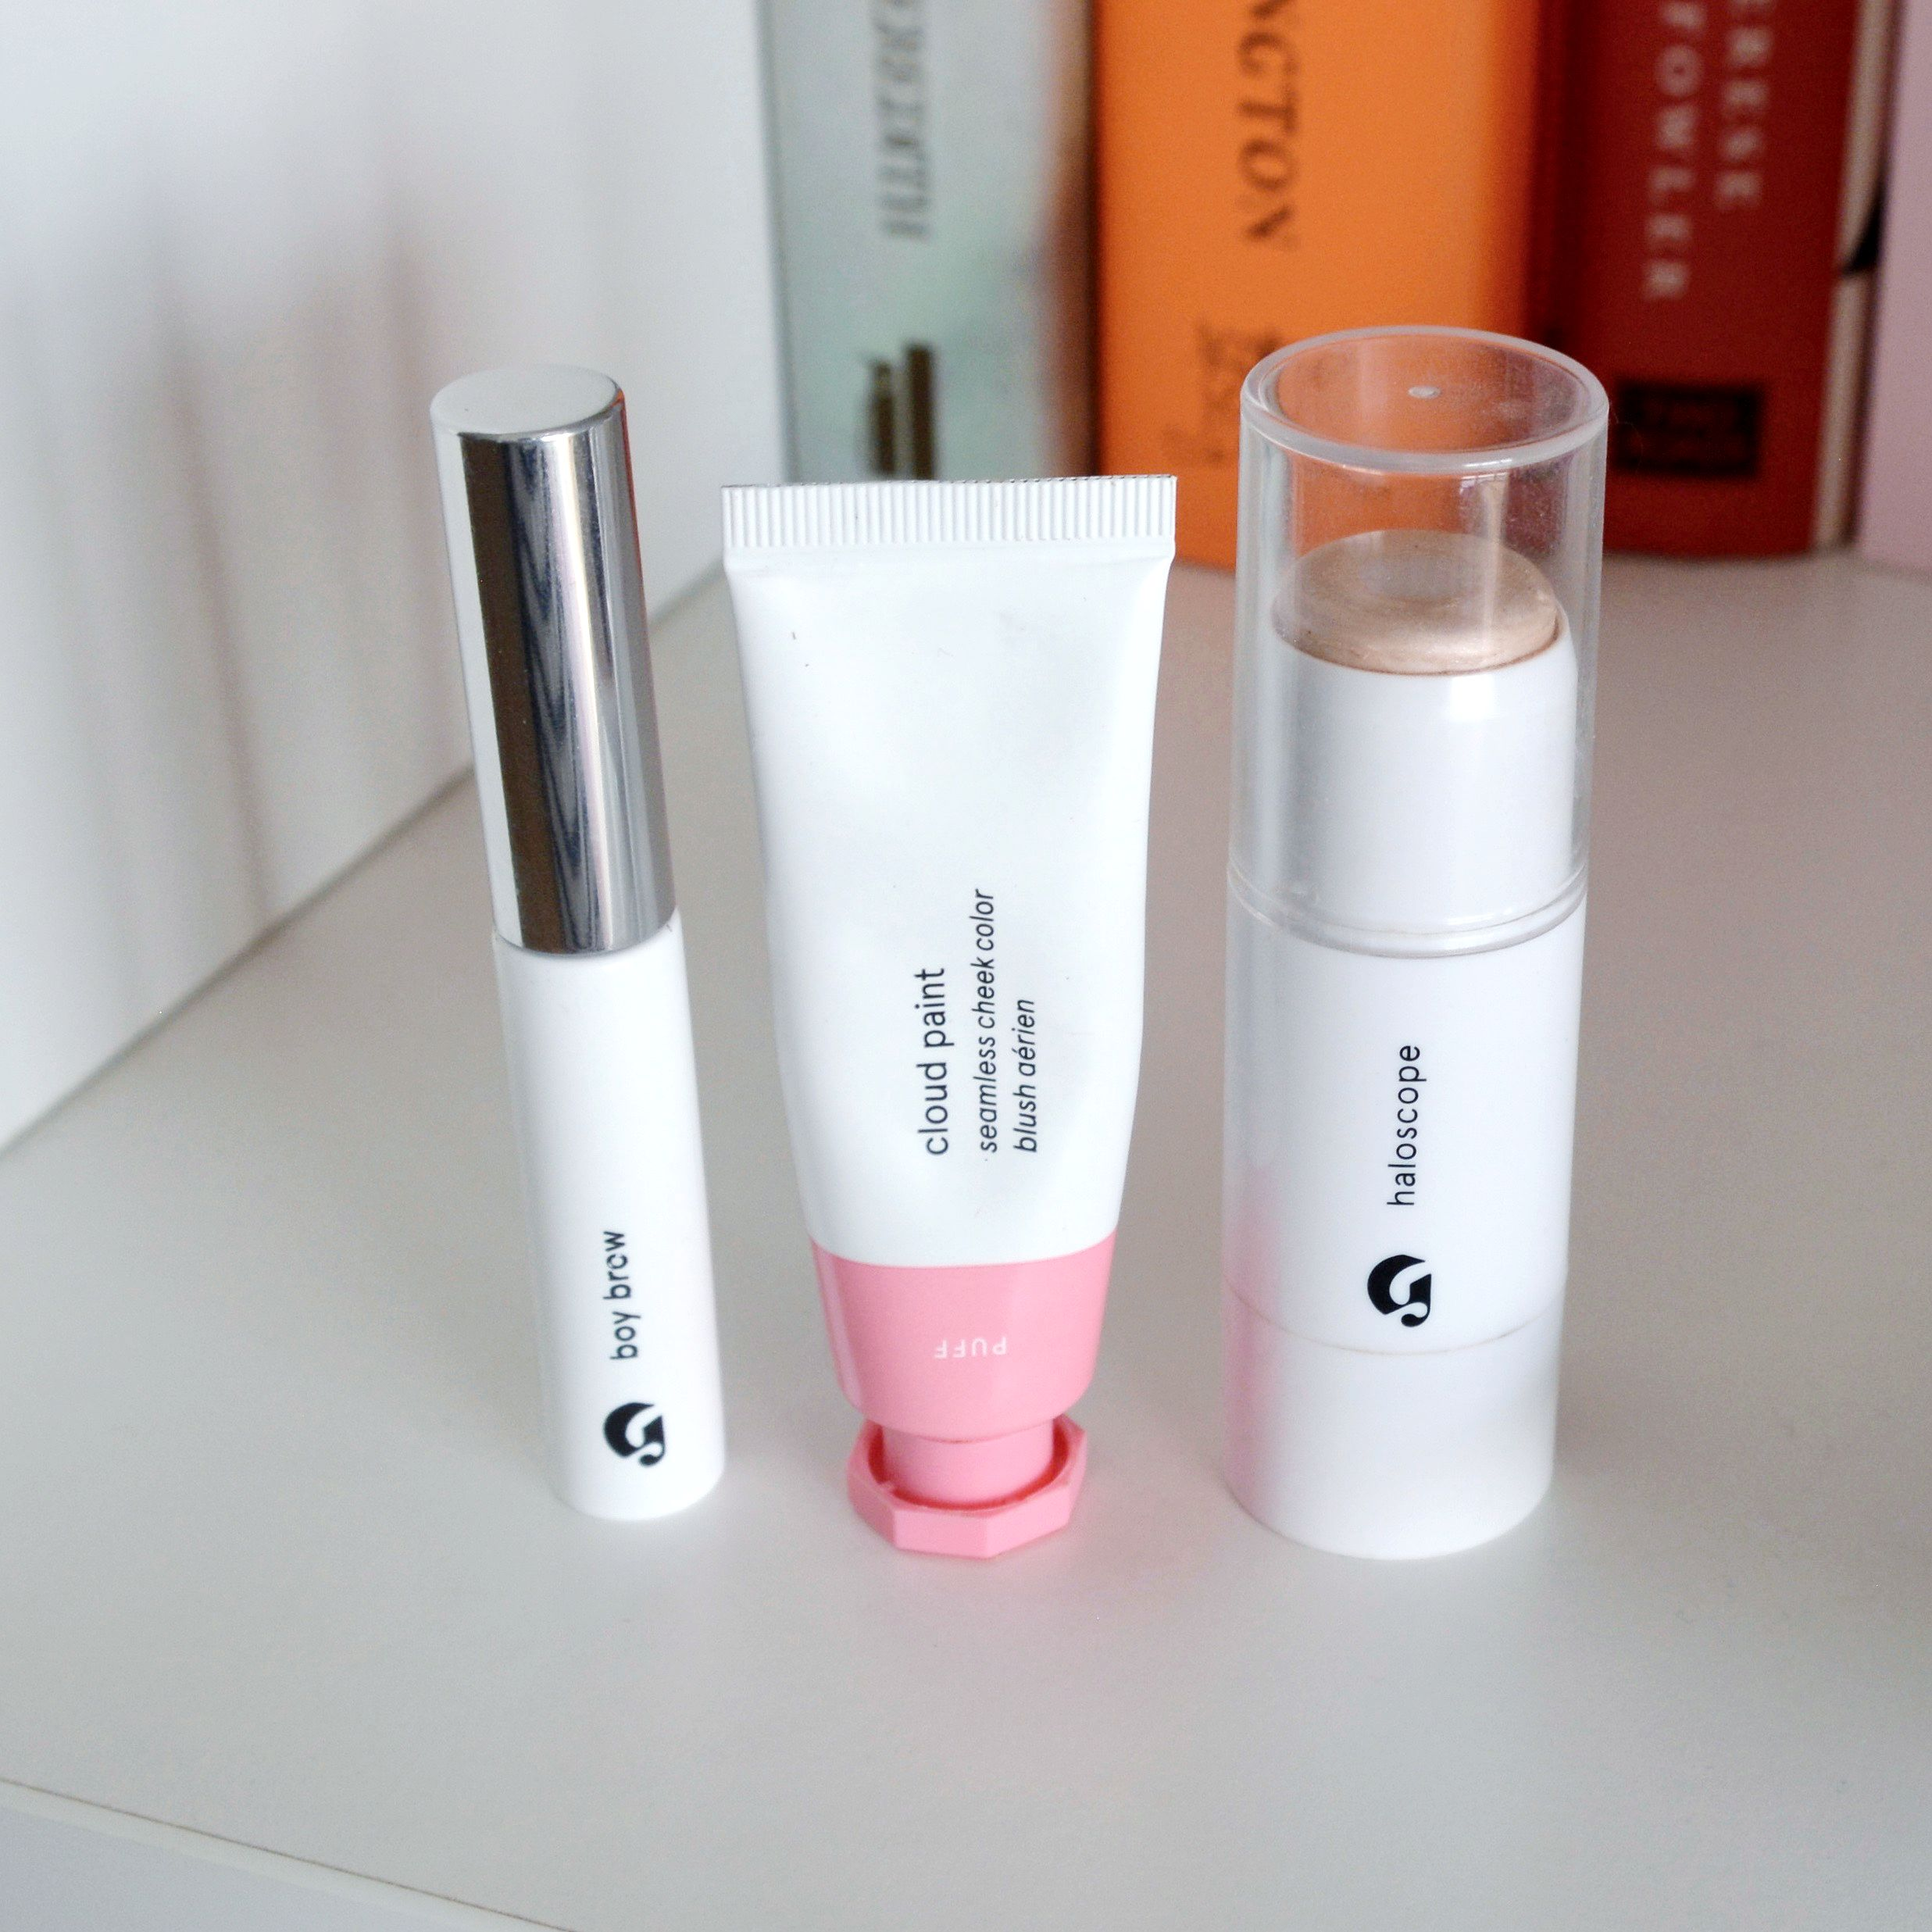 A late to the party Glossier review - but is Glossier worth the hype? Natural make up inspiration from the ultimate cool-girl brand. I tried out Glossier on my sensitive skin, click the image to read my thoughts and get a discount code! #talontedlex #glossierreview